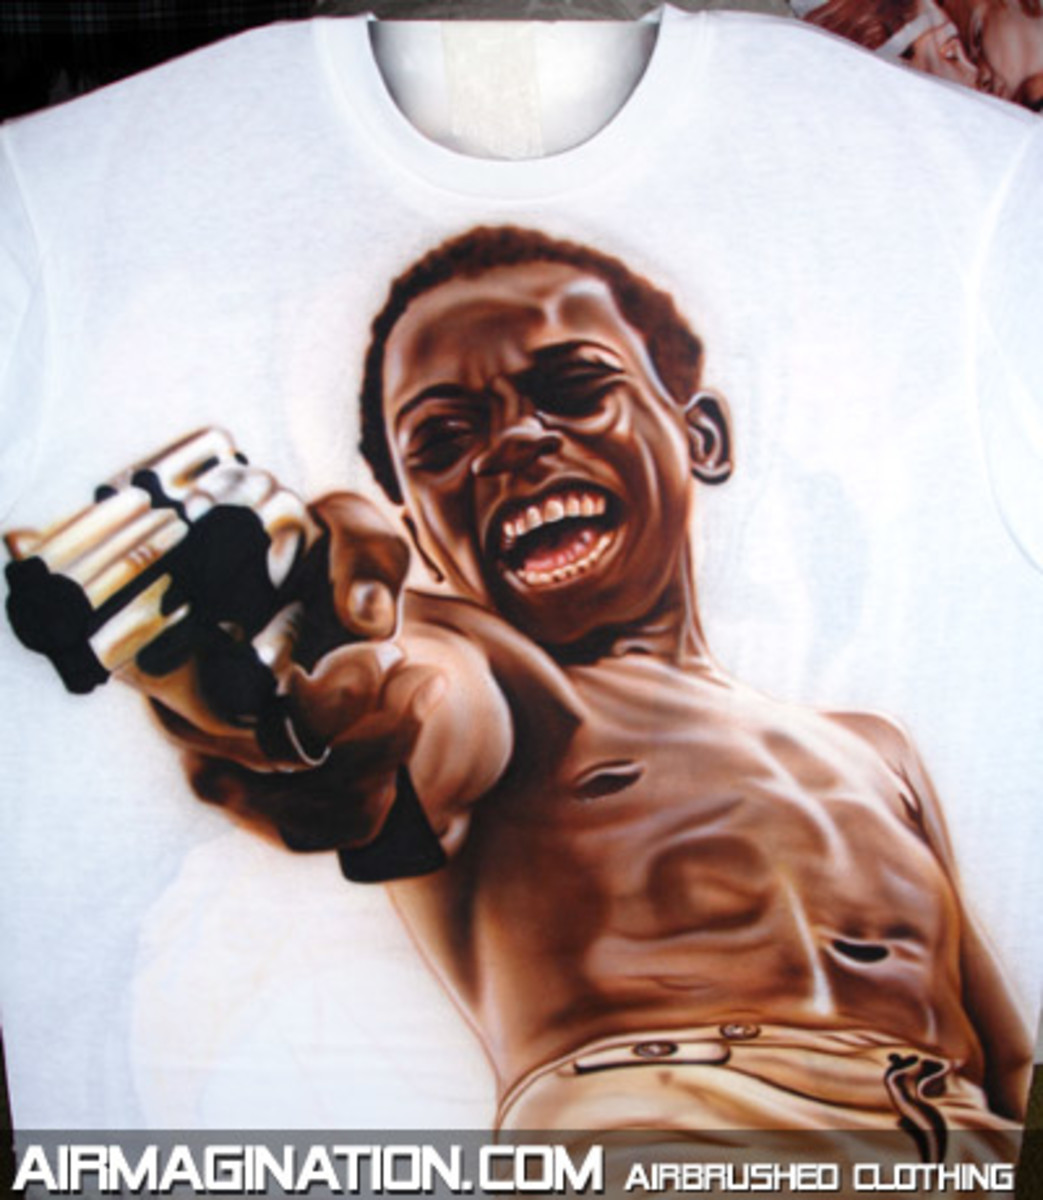 This photo of a scene in the movie has becomed part of modern art circles. You can little little Ze´s image in stencils, grafftis and in a T-shirt like you do here. It represents the pure evil in the character.